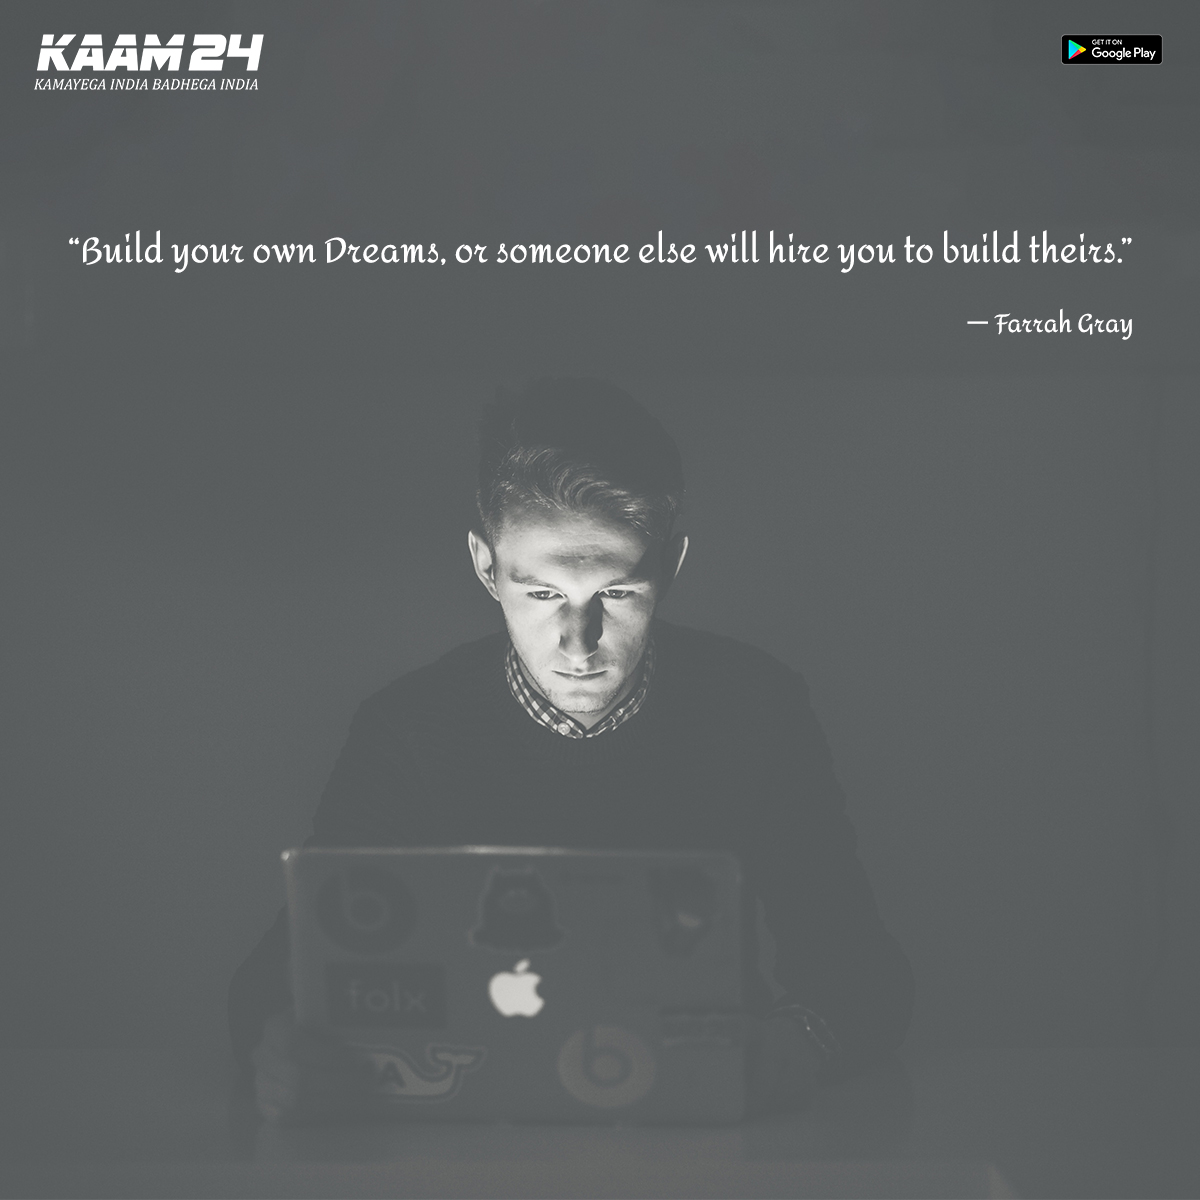 Build Your Own Dreams. Or Someone Else Will Hire You To Build Theirs.                                                                         _FARRAH GRAY ✍ ● ● ● #ARRAHGRAY #kaam24  #motivation #inspiration #love #life #motivationalquotes #quotes #mindset #believe #goals